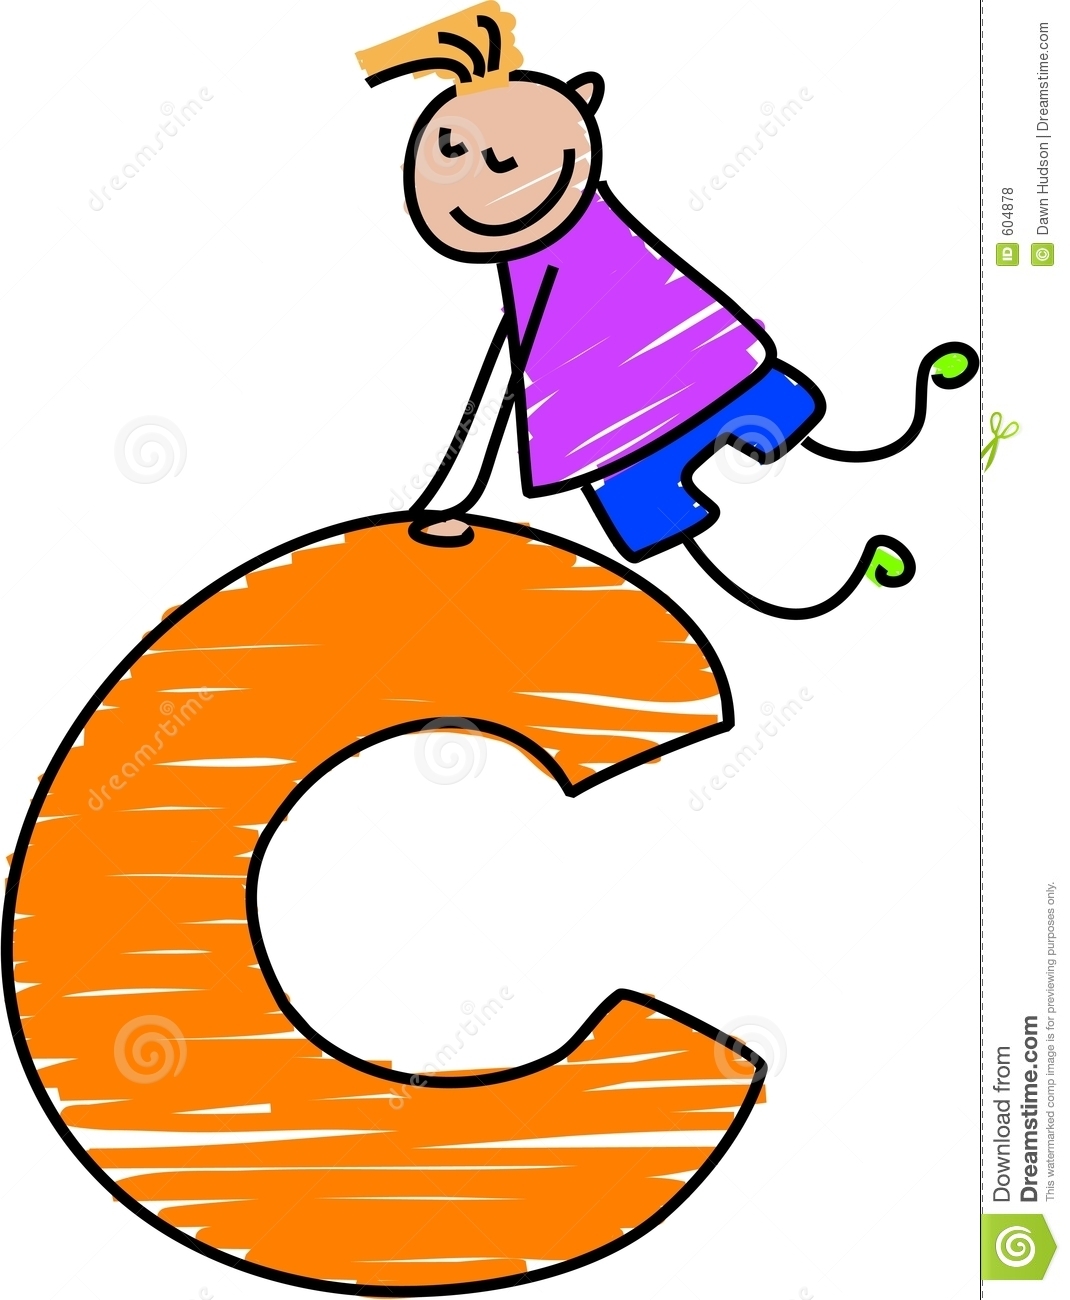 Letter C Boy Royalty Free Stock Photos - Image: 604878